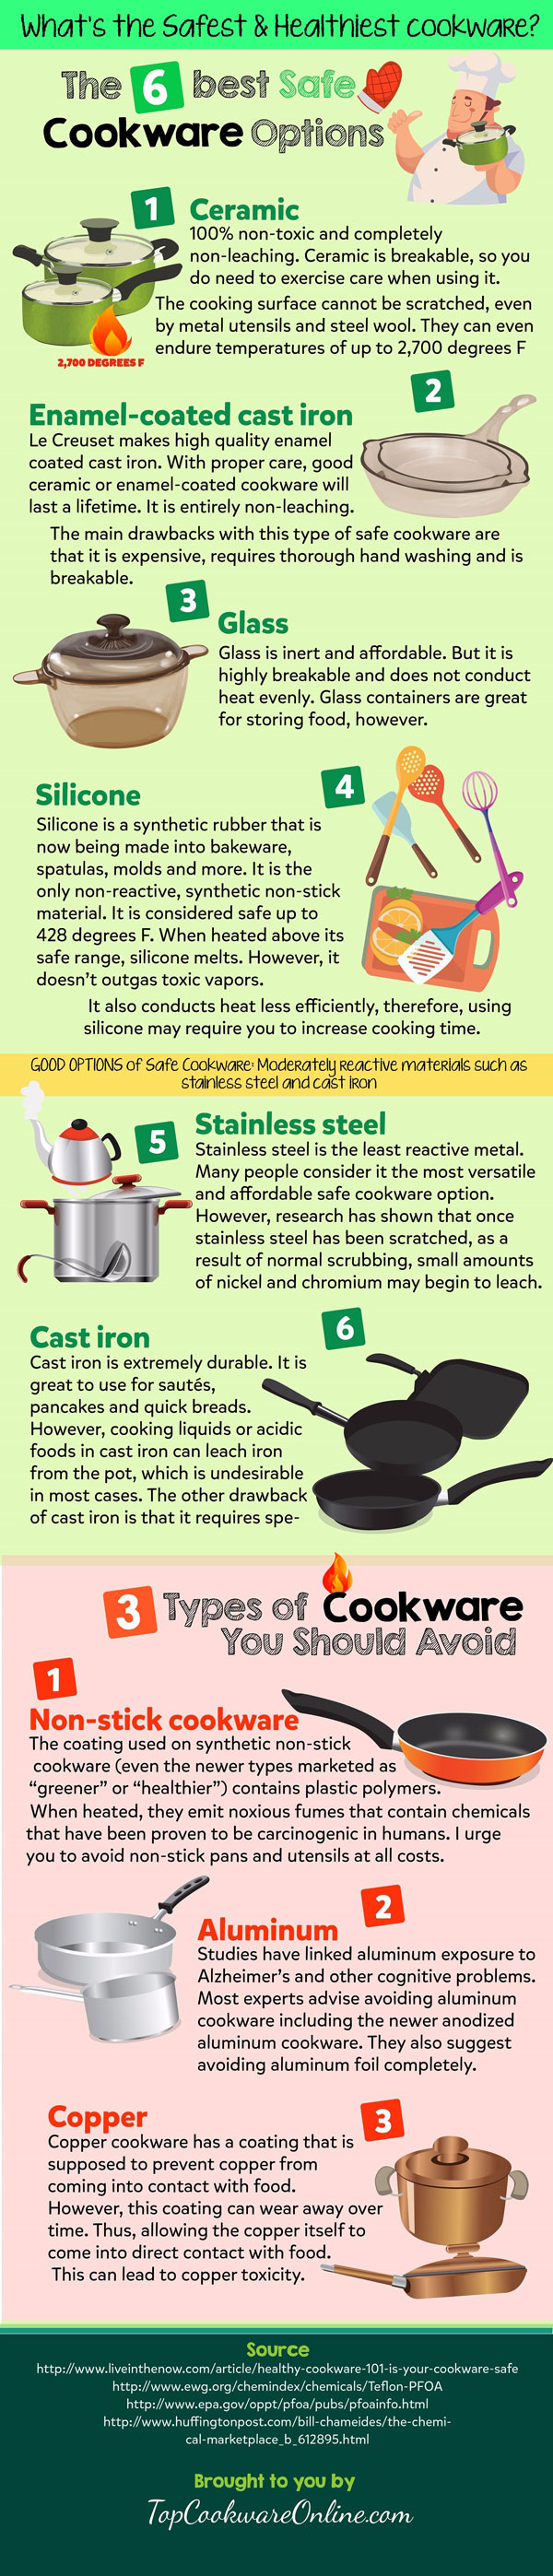 healthy-cookware